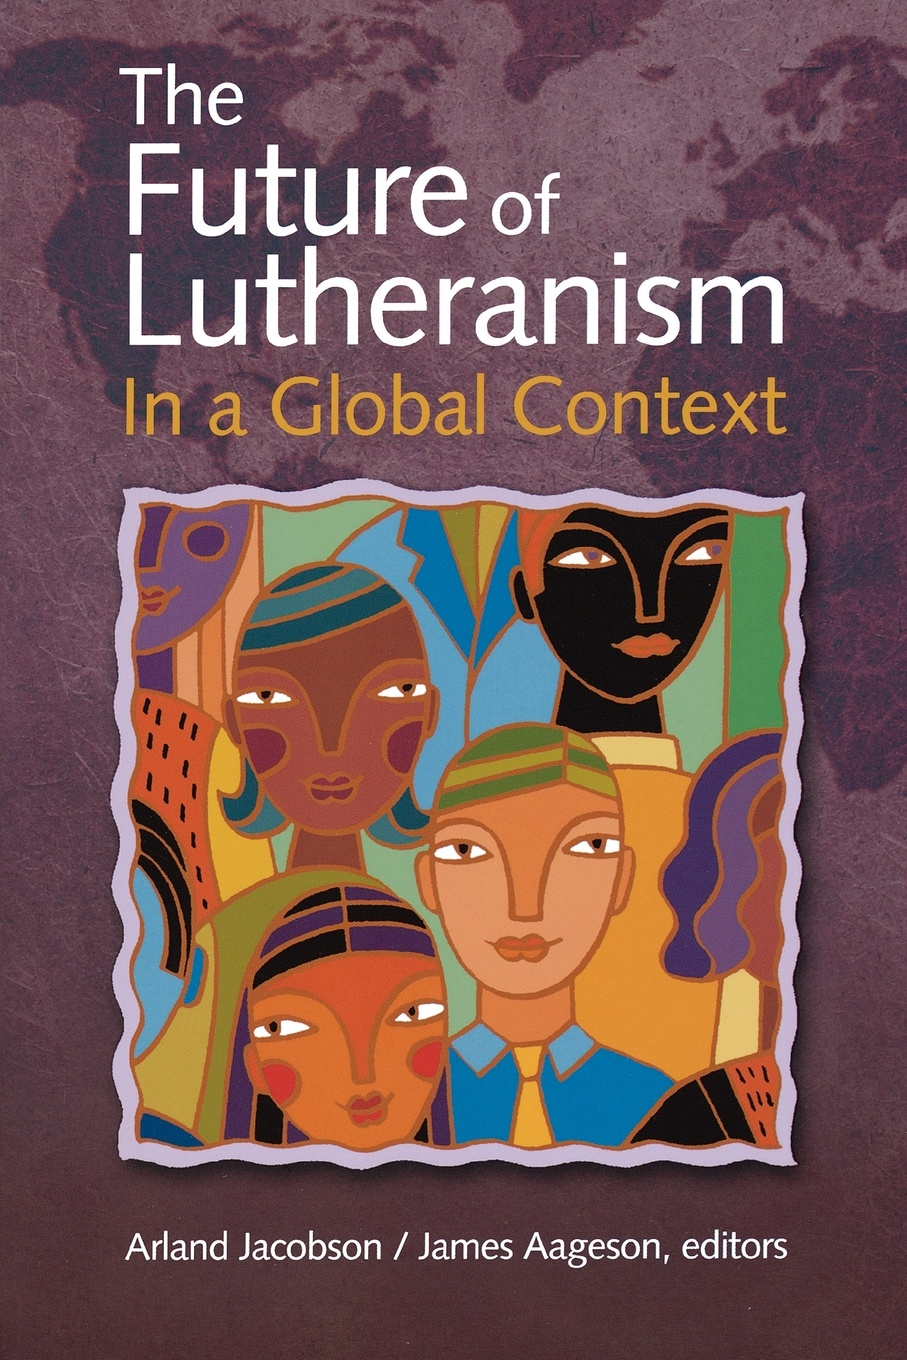 The Future of Lutheranism in a Global Context mark philps kingdom come essential theology for the twenty first century